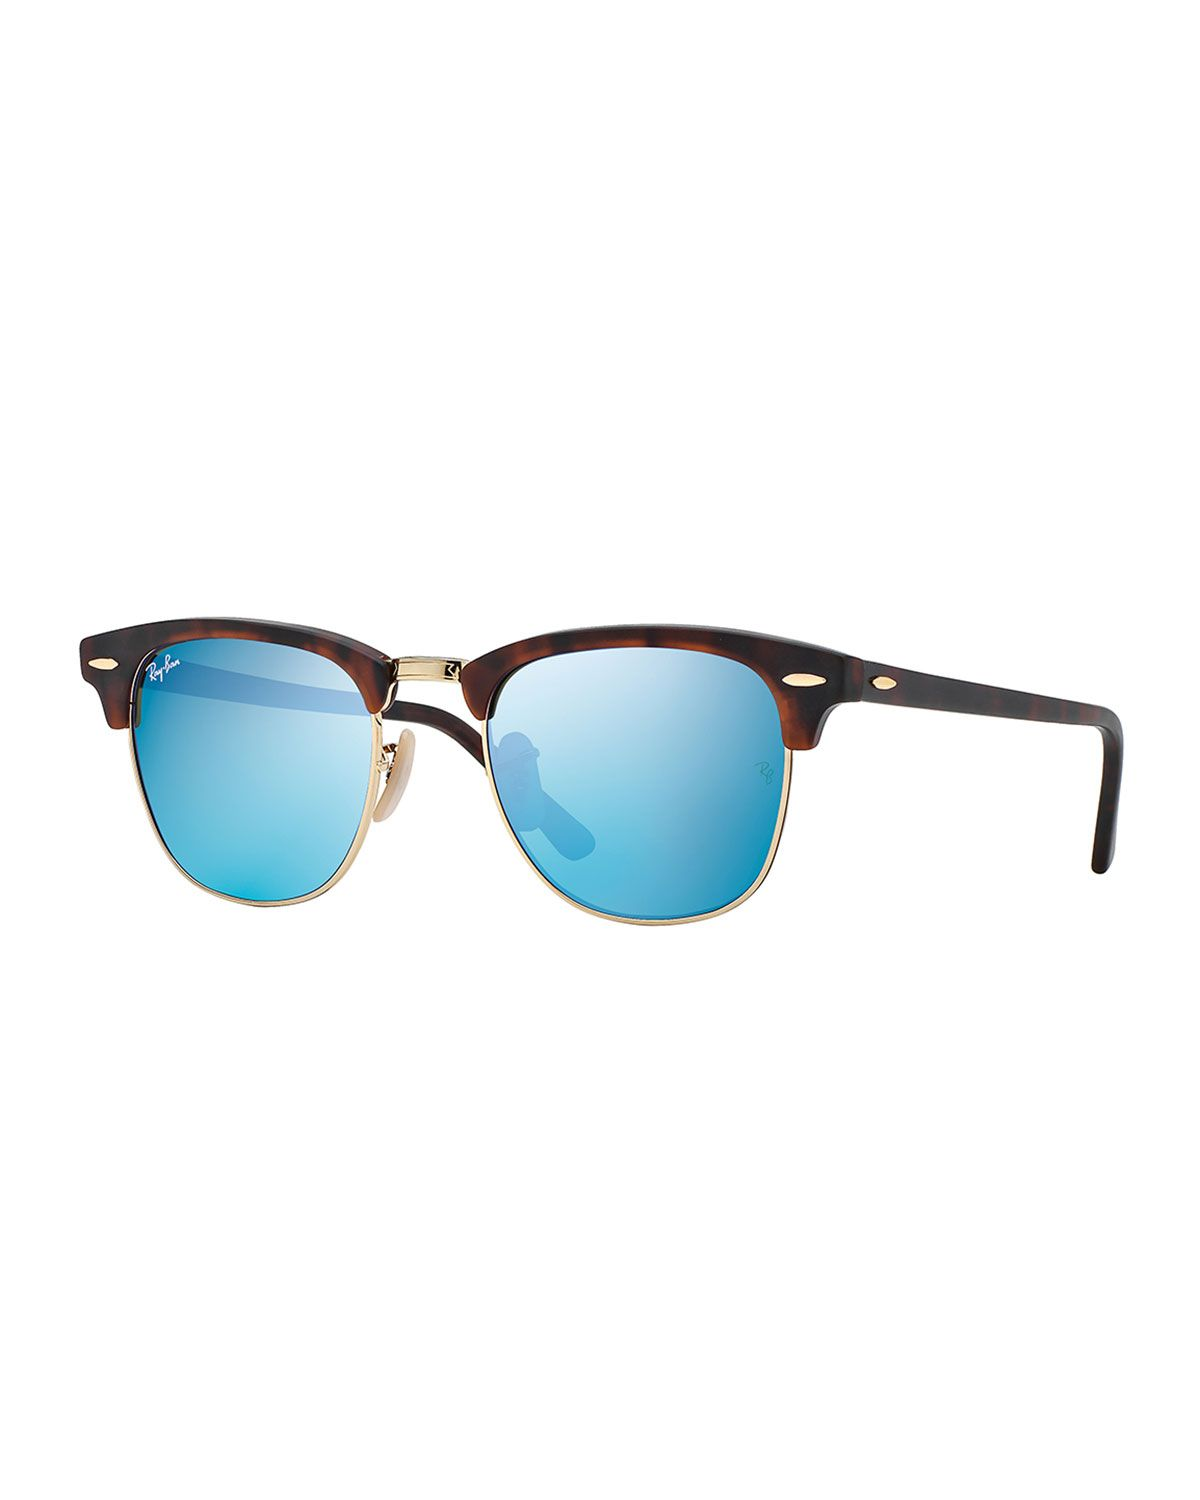 Clubmaster Sunglasses with Blue Mirror Lens, Havana | Sunglasses ...